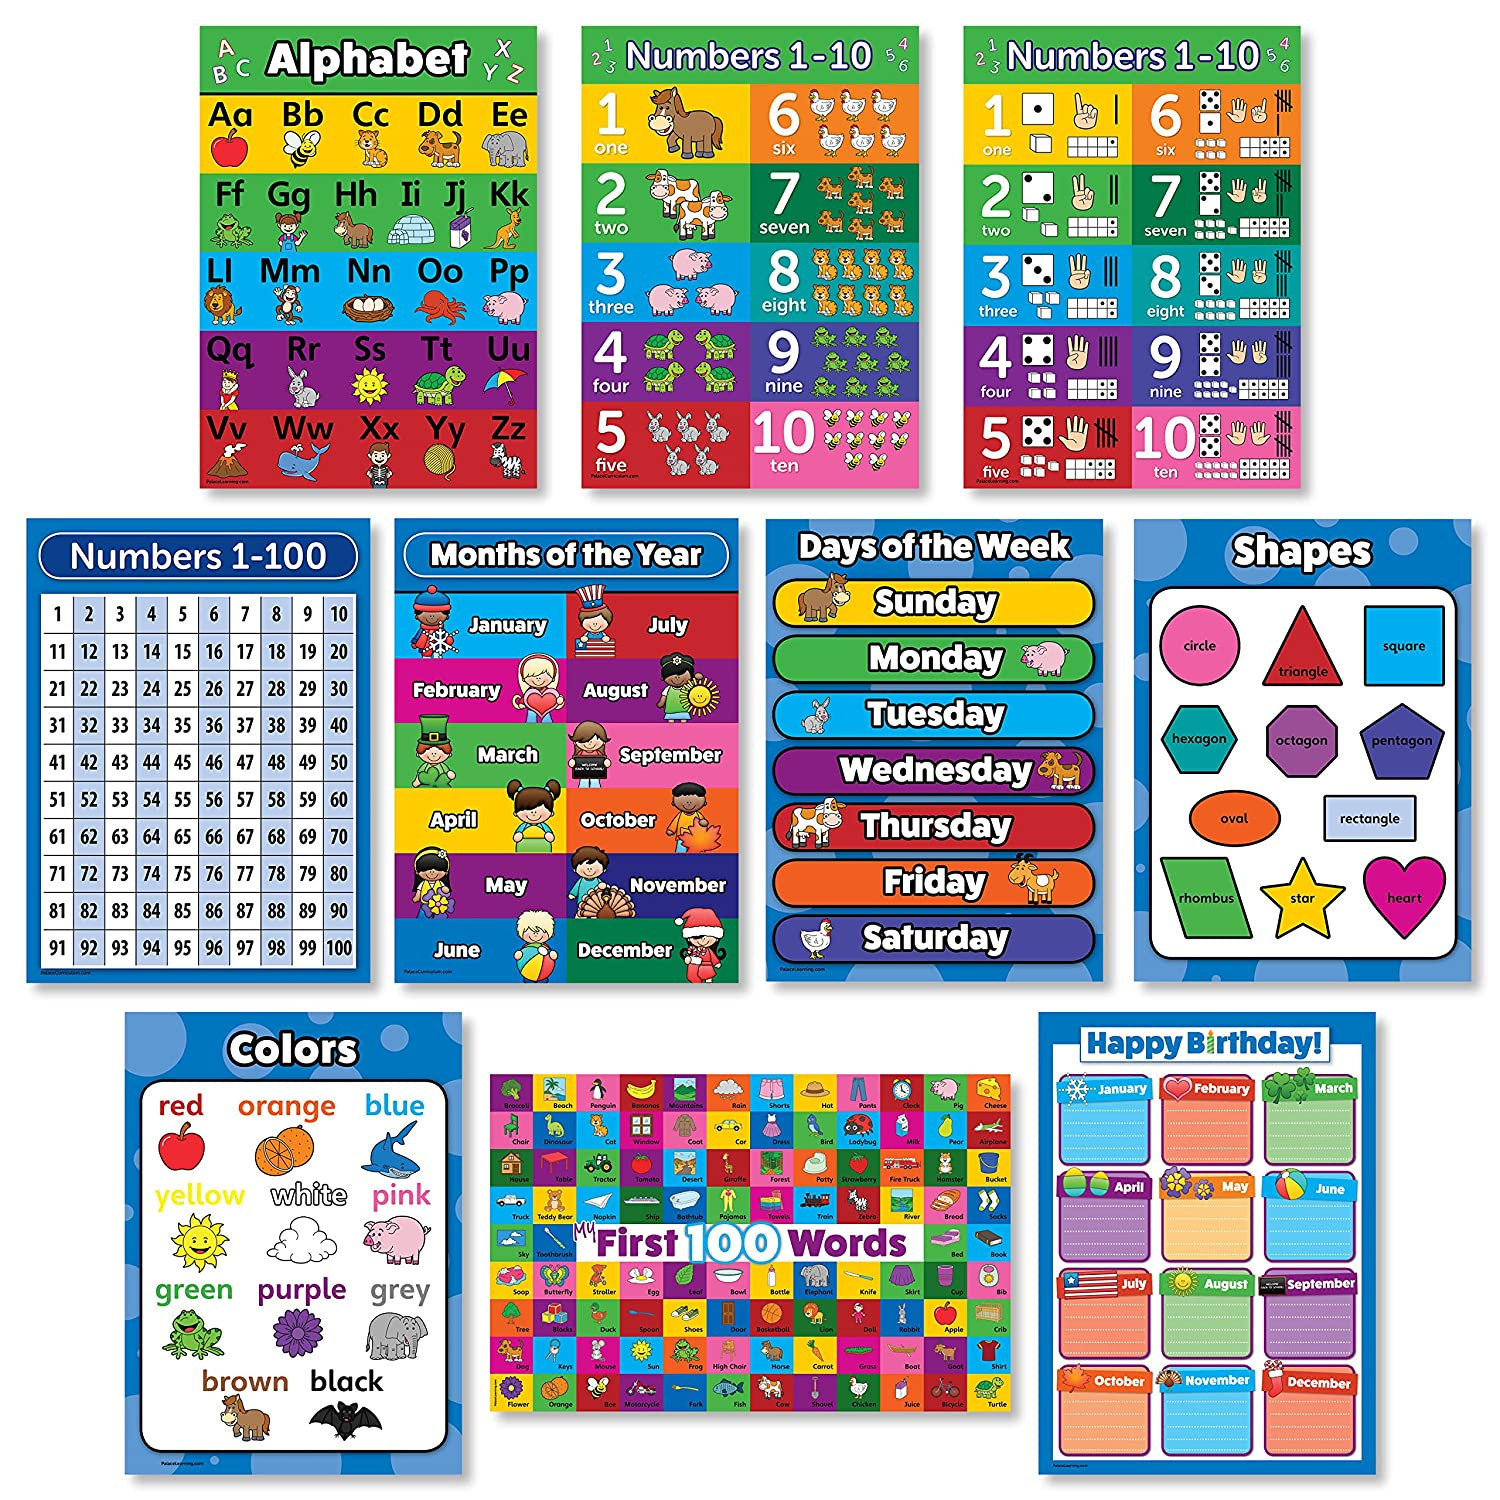 Preschool Palace Curriculum Preschool Curriculum Preschool Palace